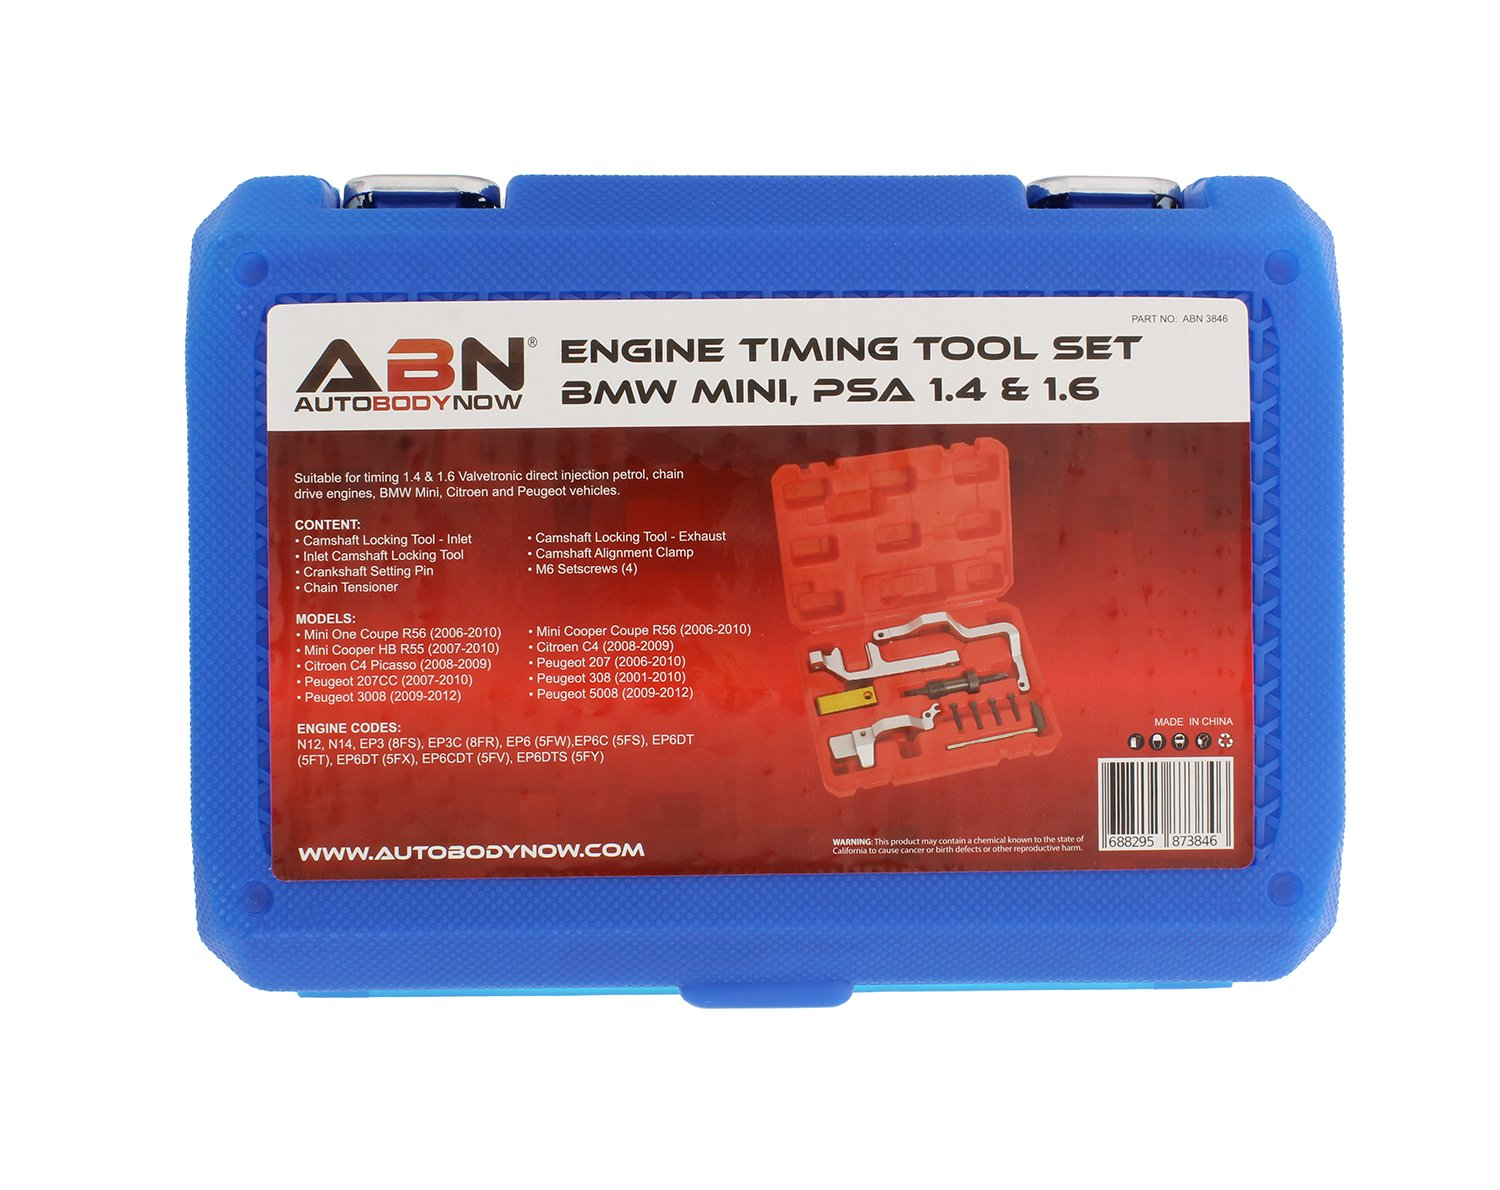 Abn Engine Timing Tool Set For Mini Cooper N12 N14 Bmw Ford 2006 5 4 Chain Tensioners Citroen Peugeot Belt Tools Amazon Canada